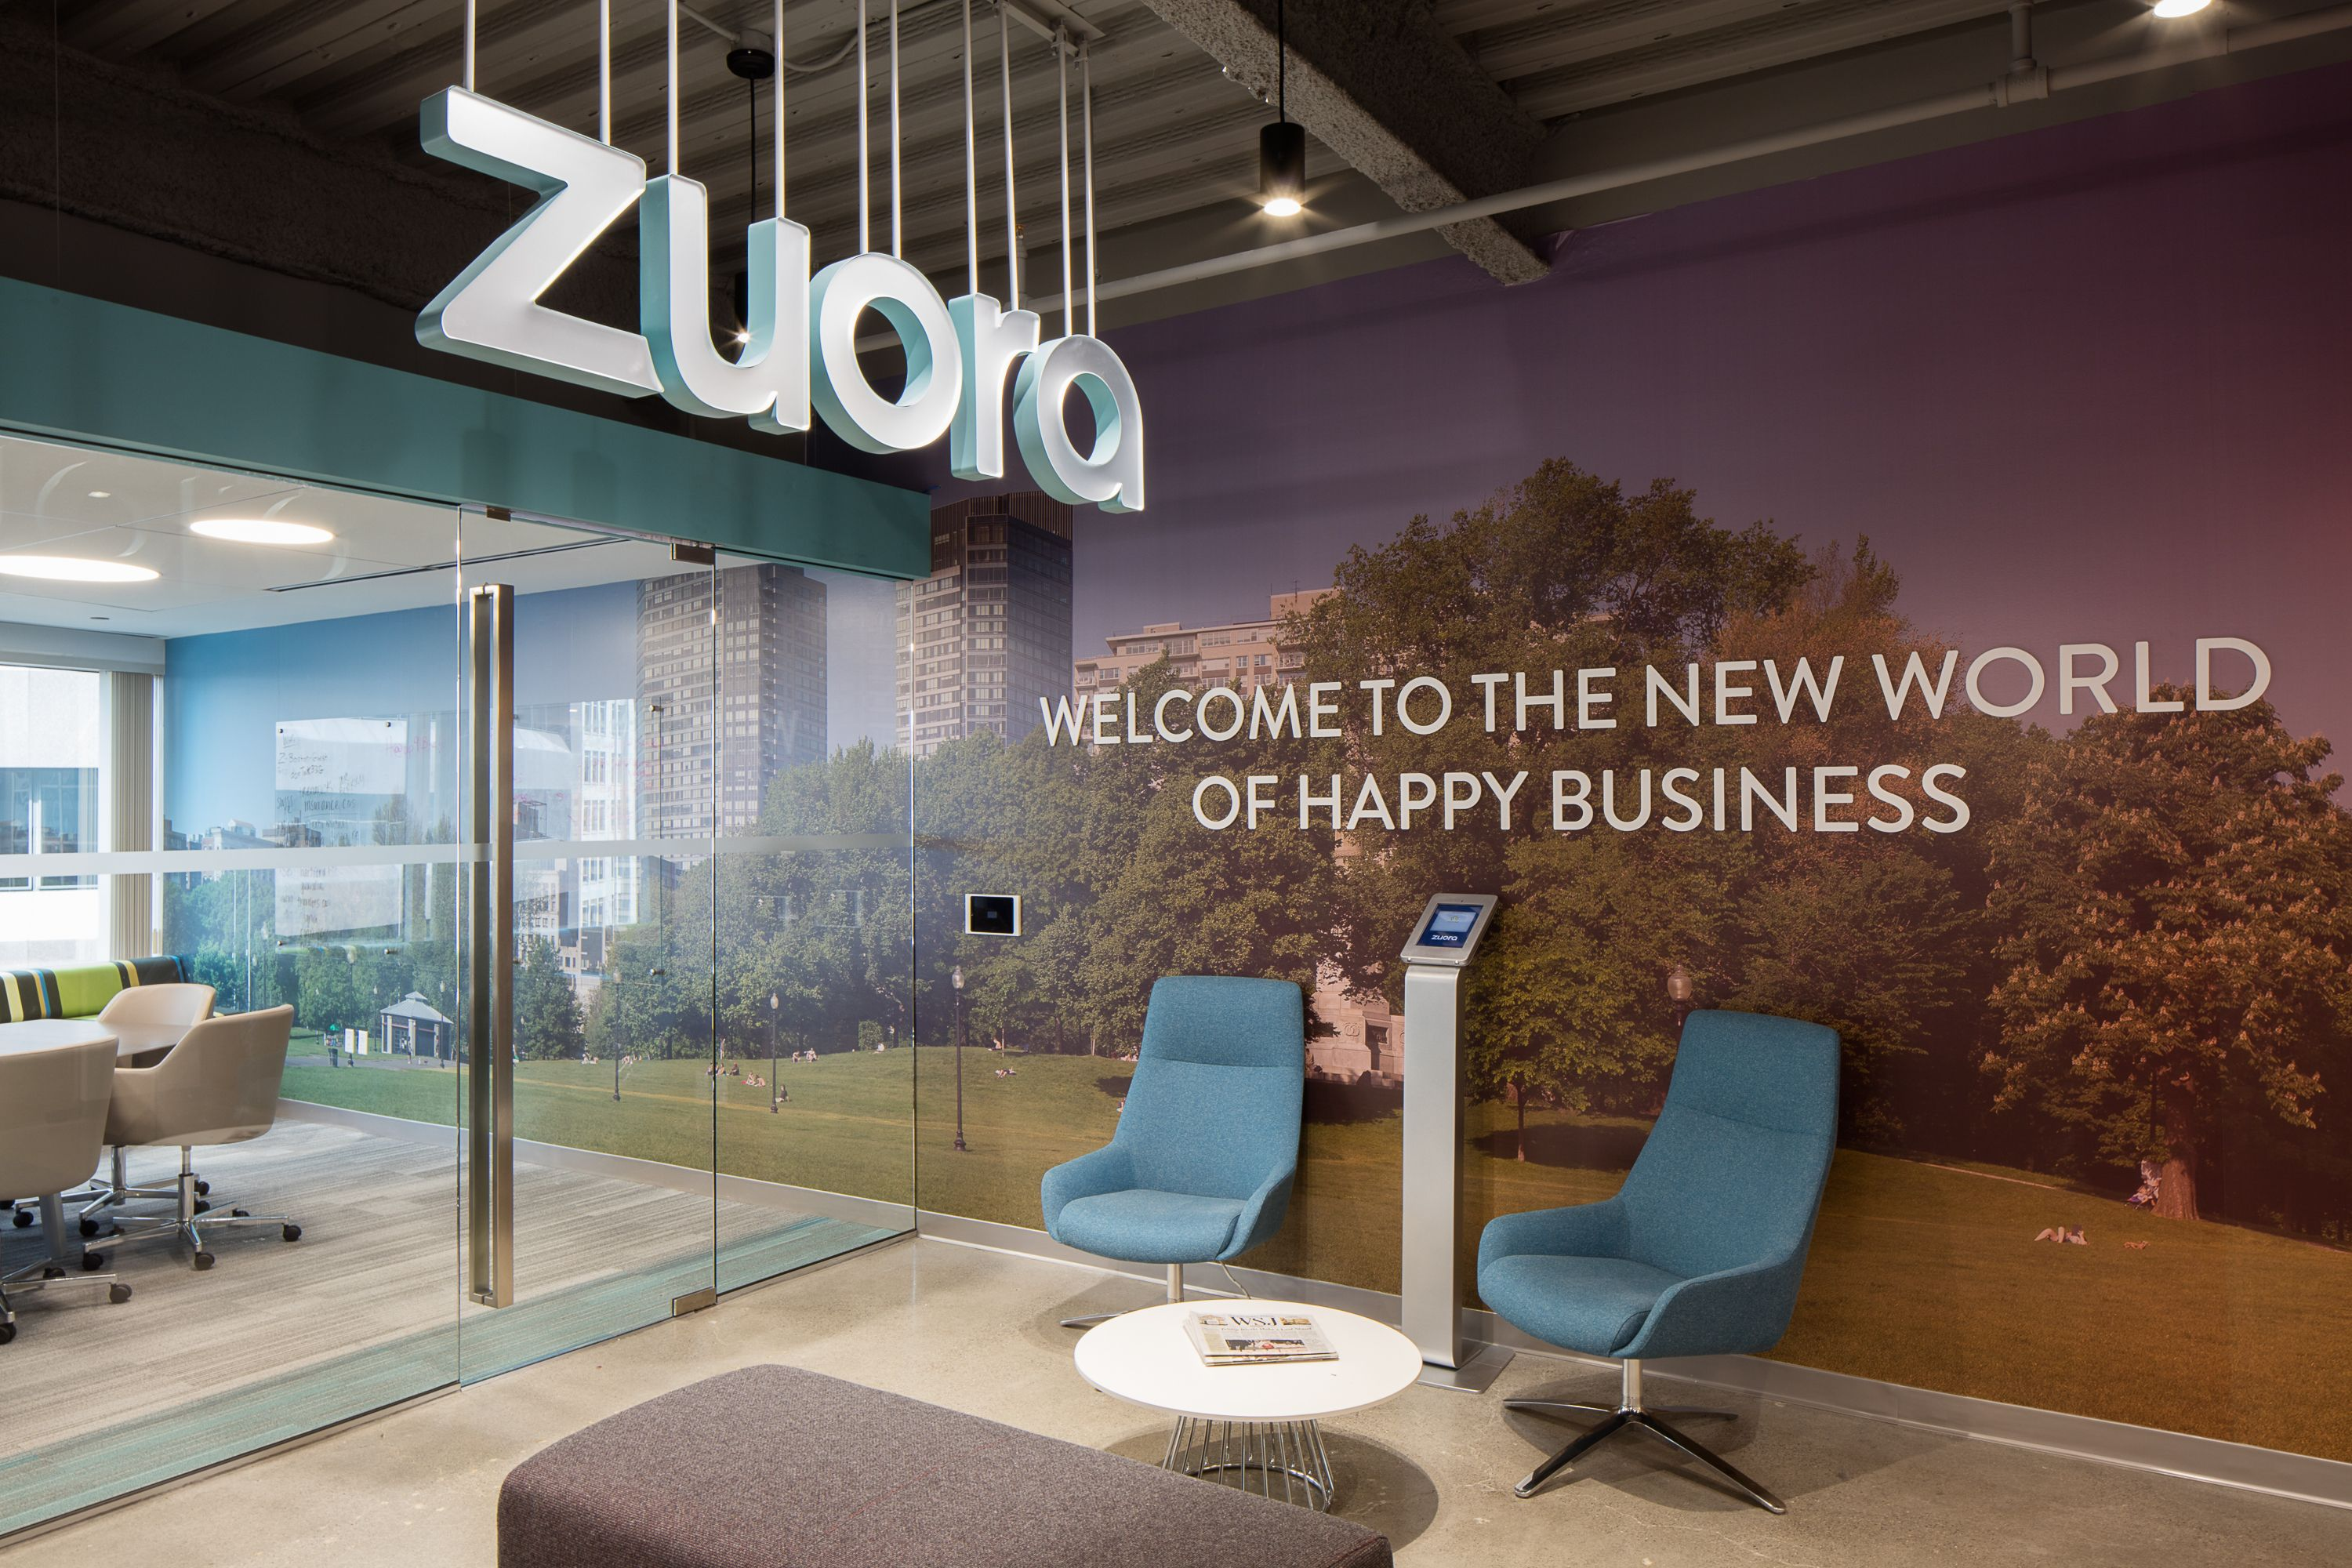 Zuora Office Space Design By Fusion Design Consultants Inc  # Muebles Fuzion Santa Rosa